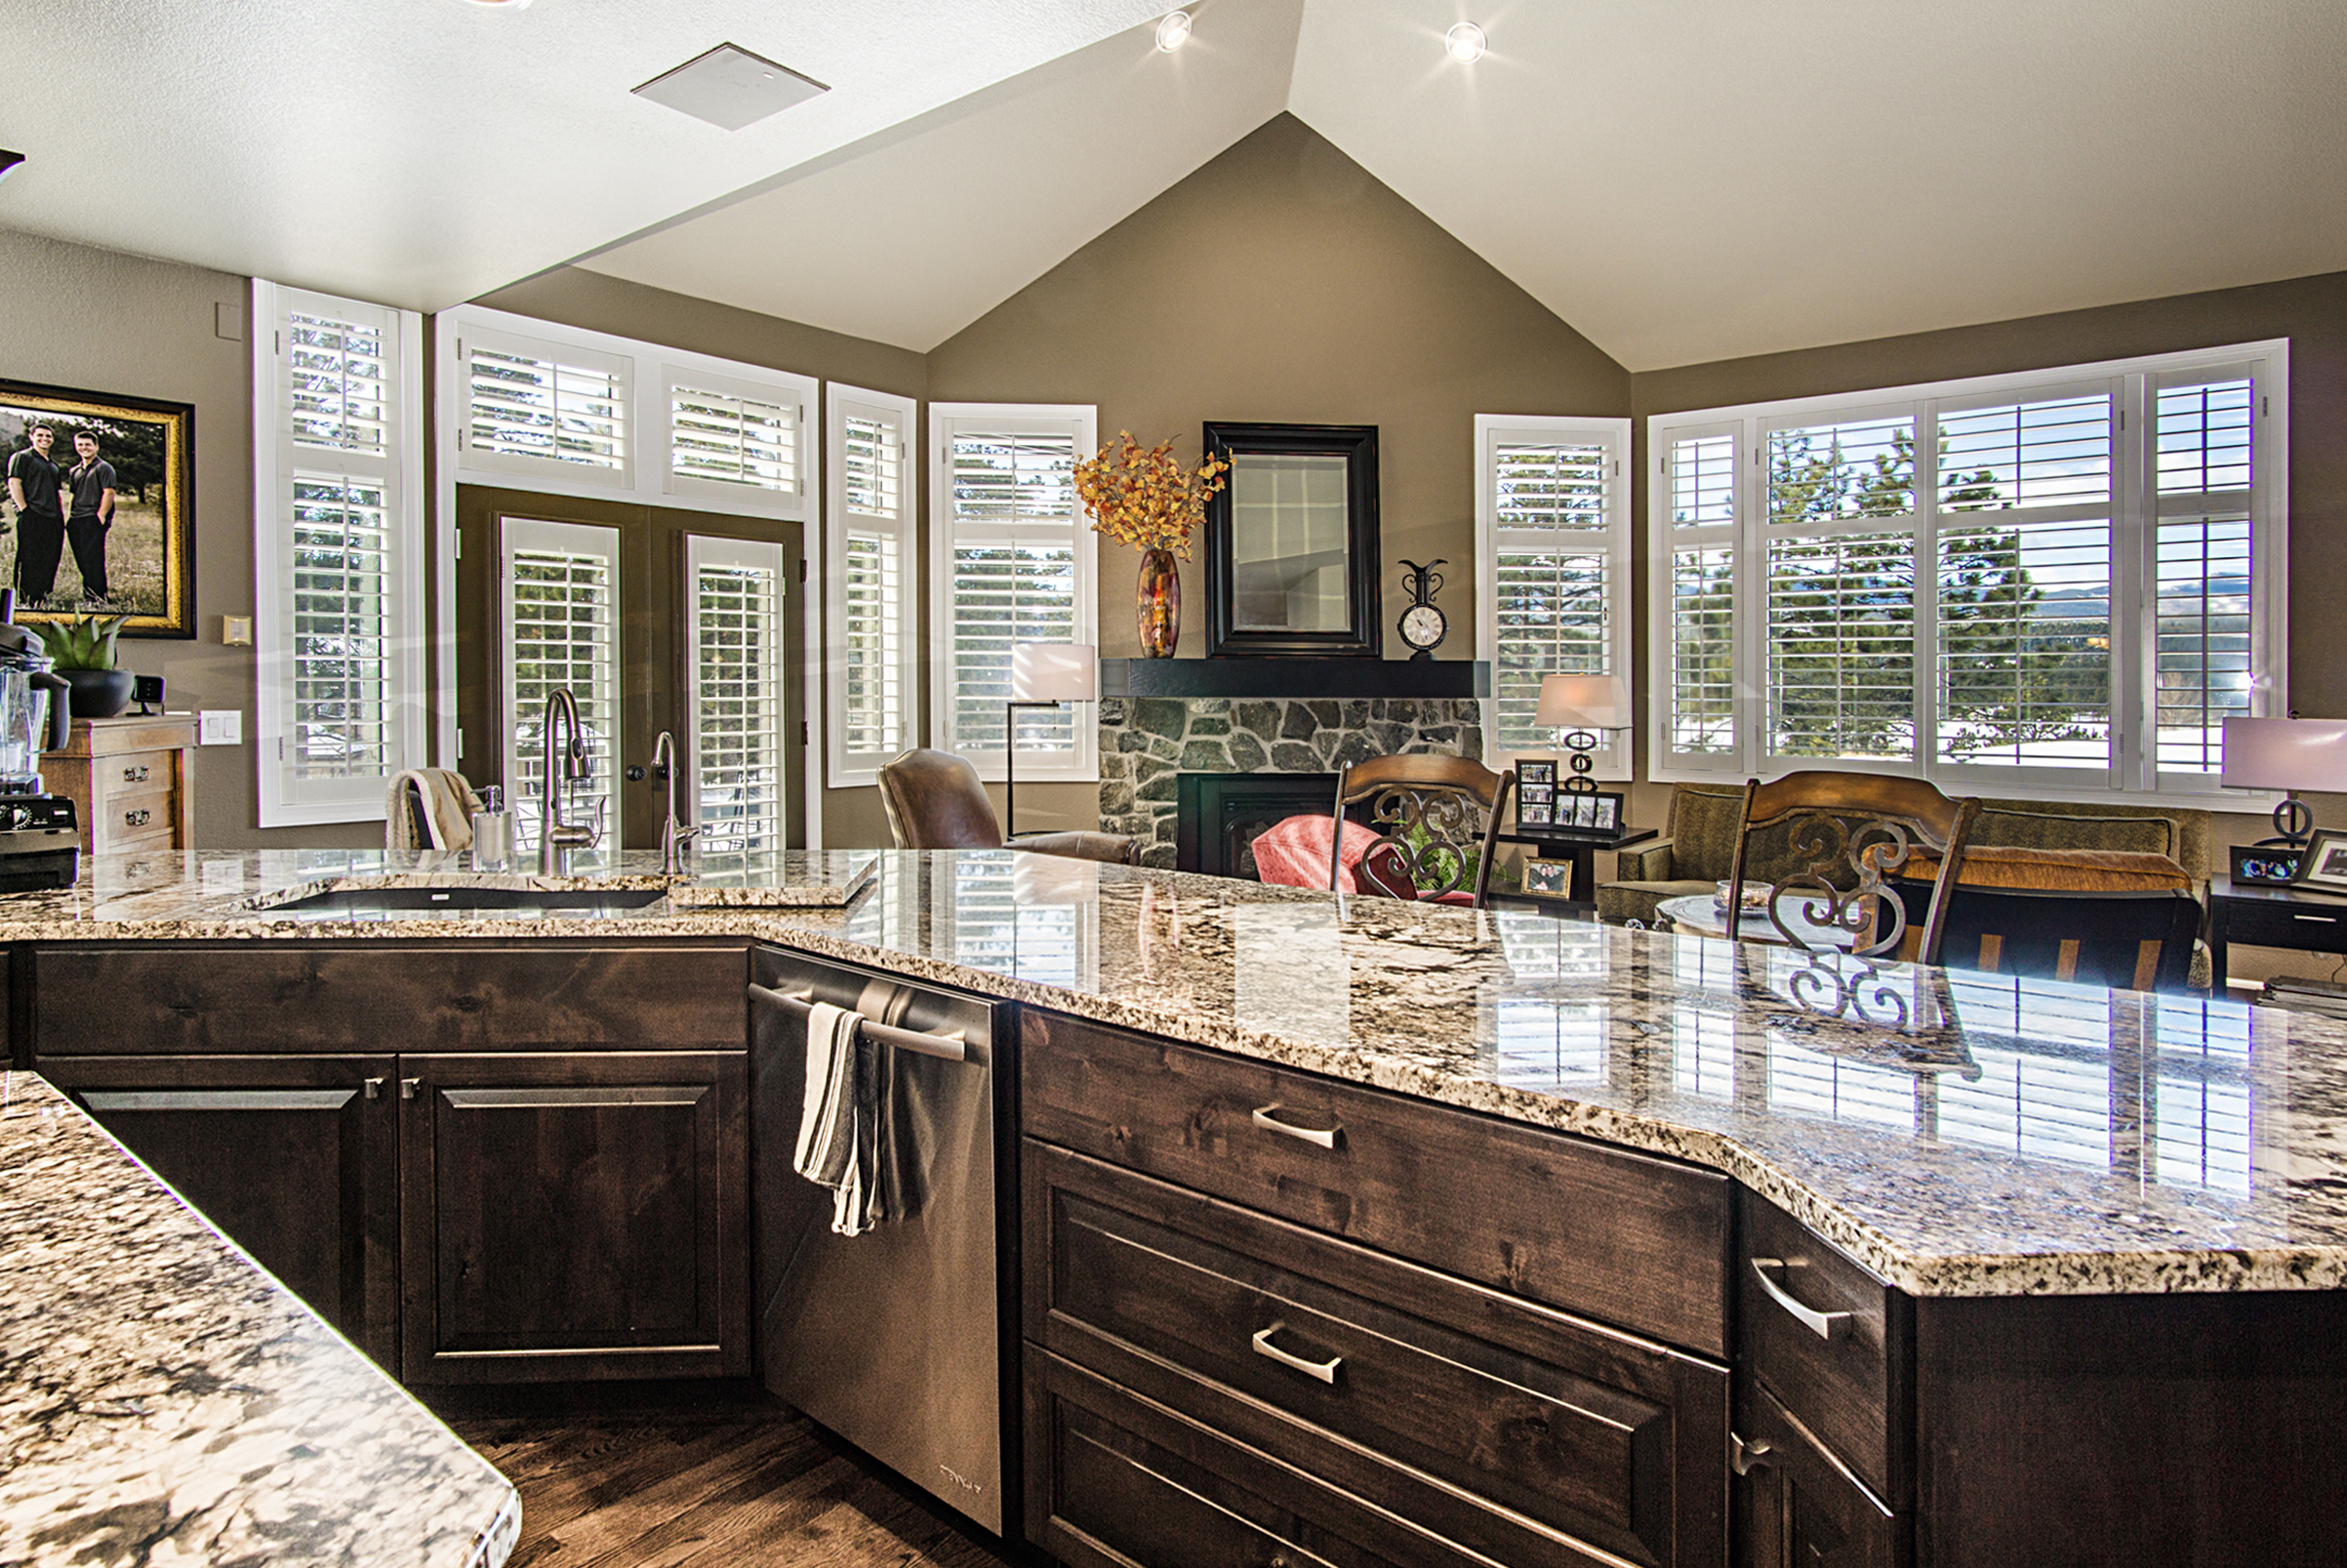 Kitchen_high_2142590.jpg